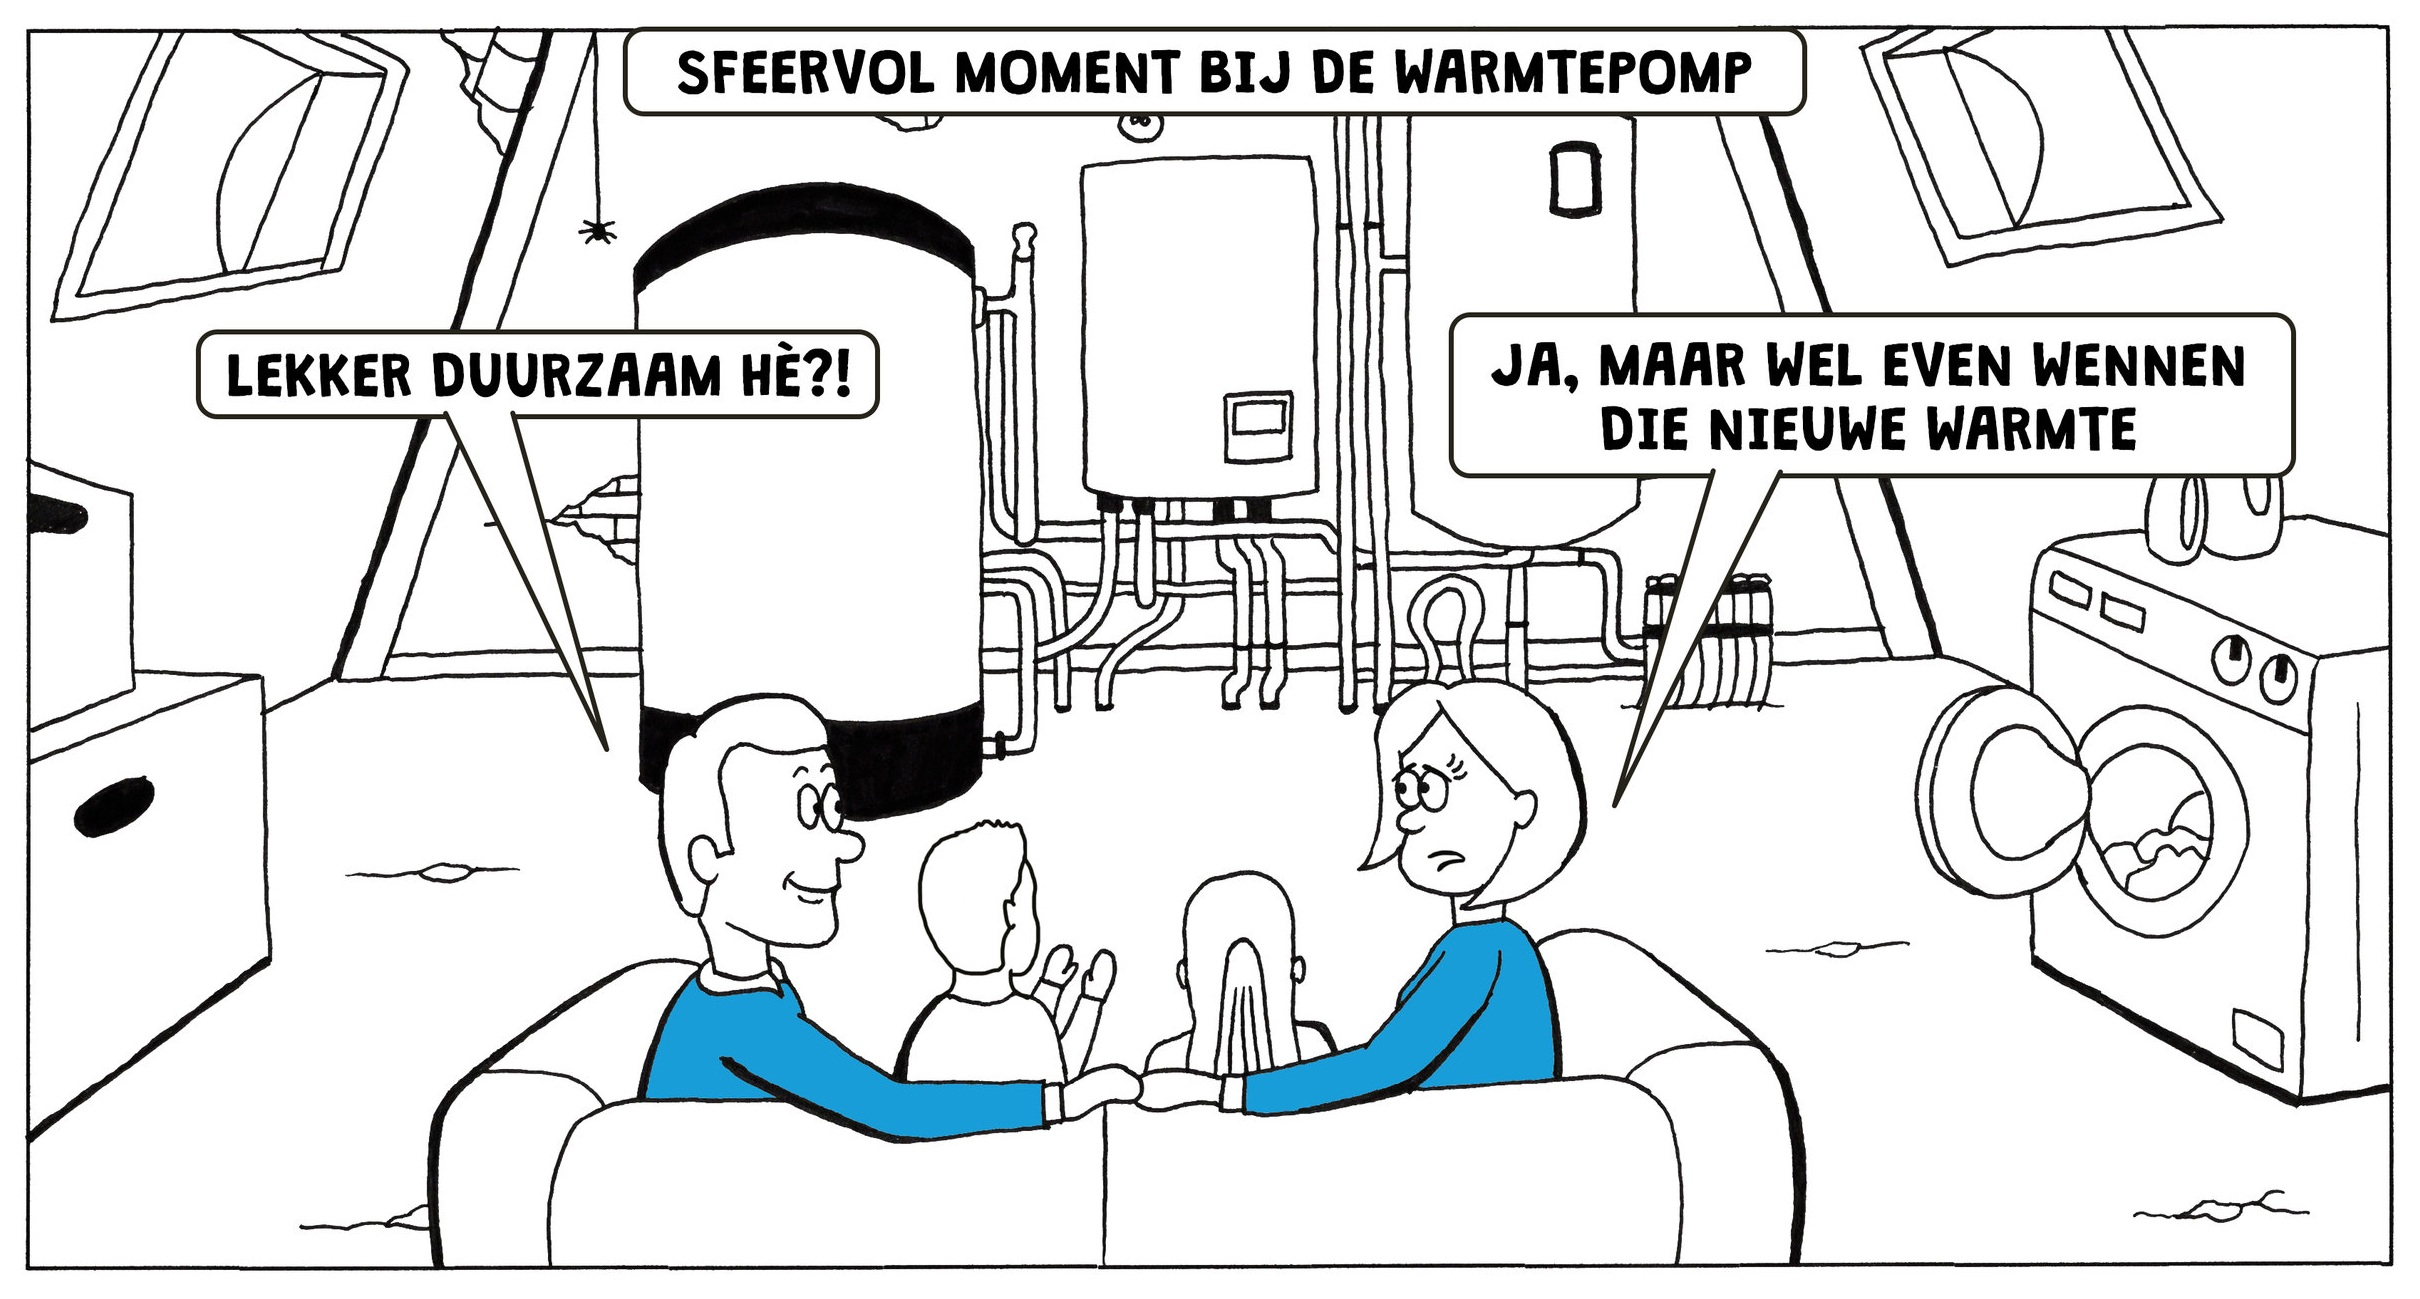 rosh-vanmanen-cartoon-A4-RGB-DEF4.jpg